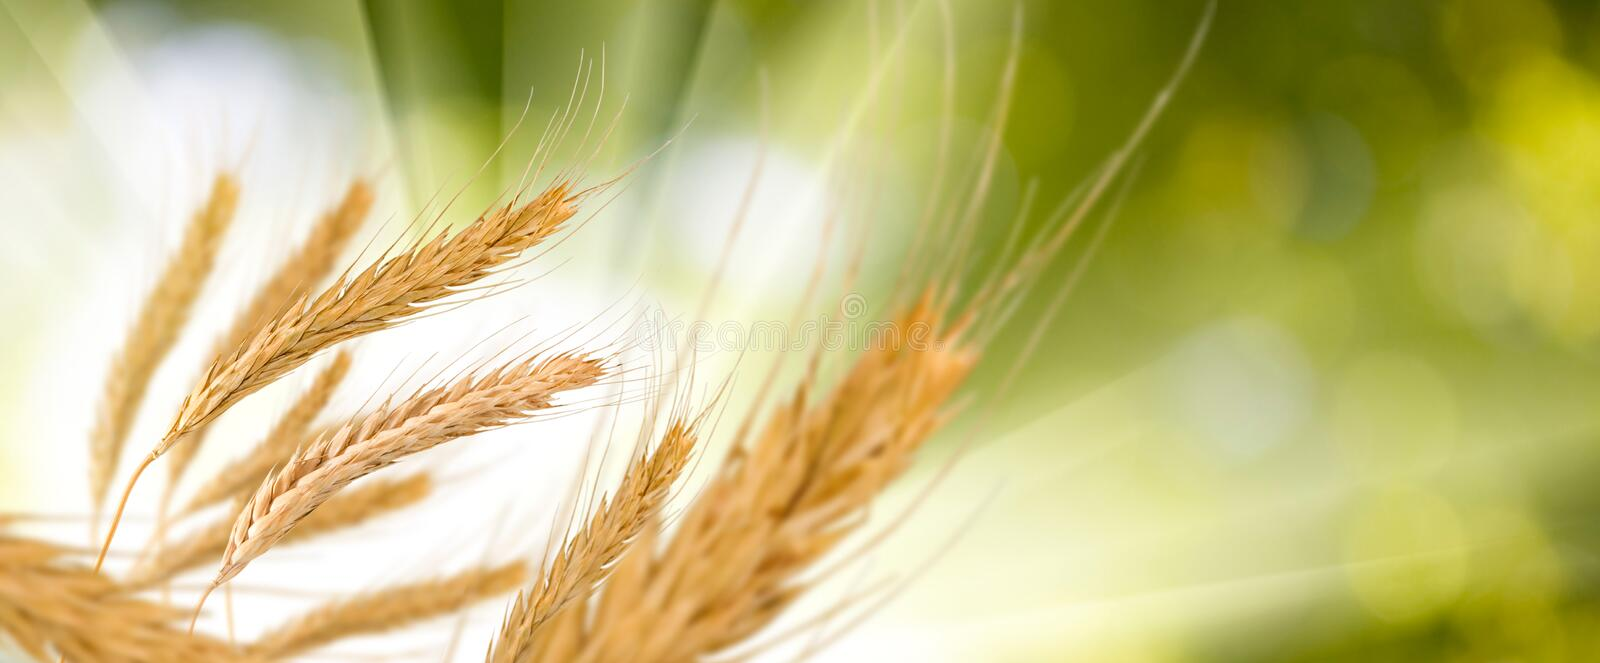 Wheat in field close-up. Image of wheat in field close-up stock photo